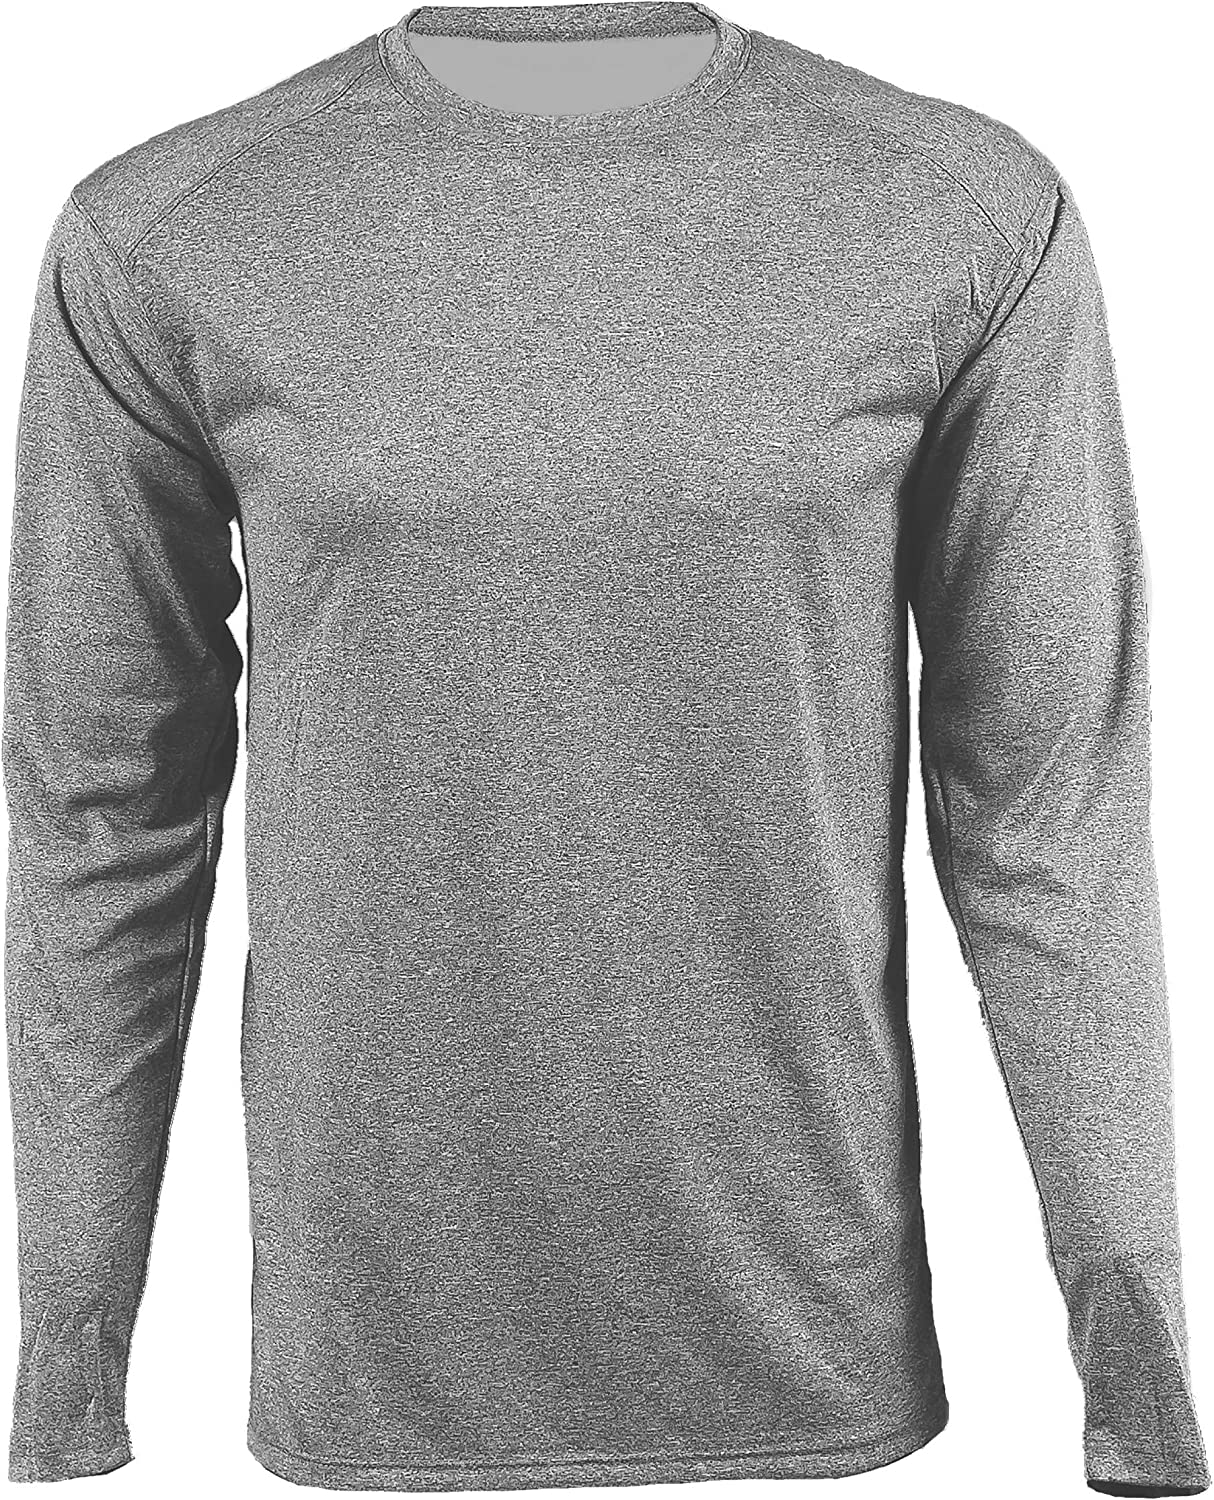 Grey, Large Insect Xtreme Performance Outdoor Shirt with Repelling Technology /…